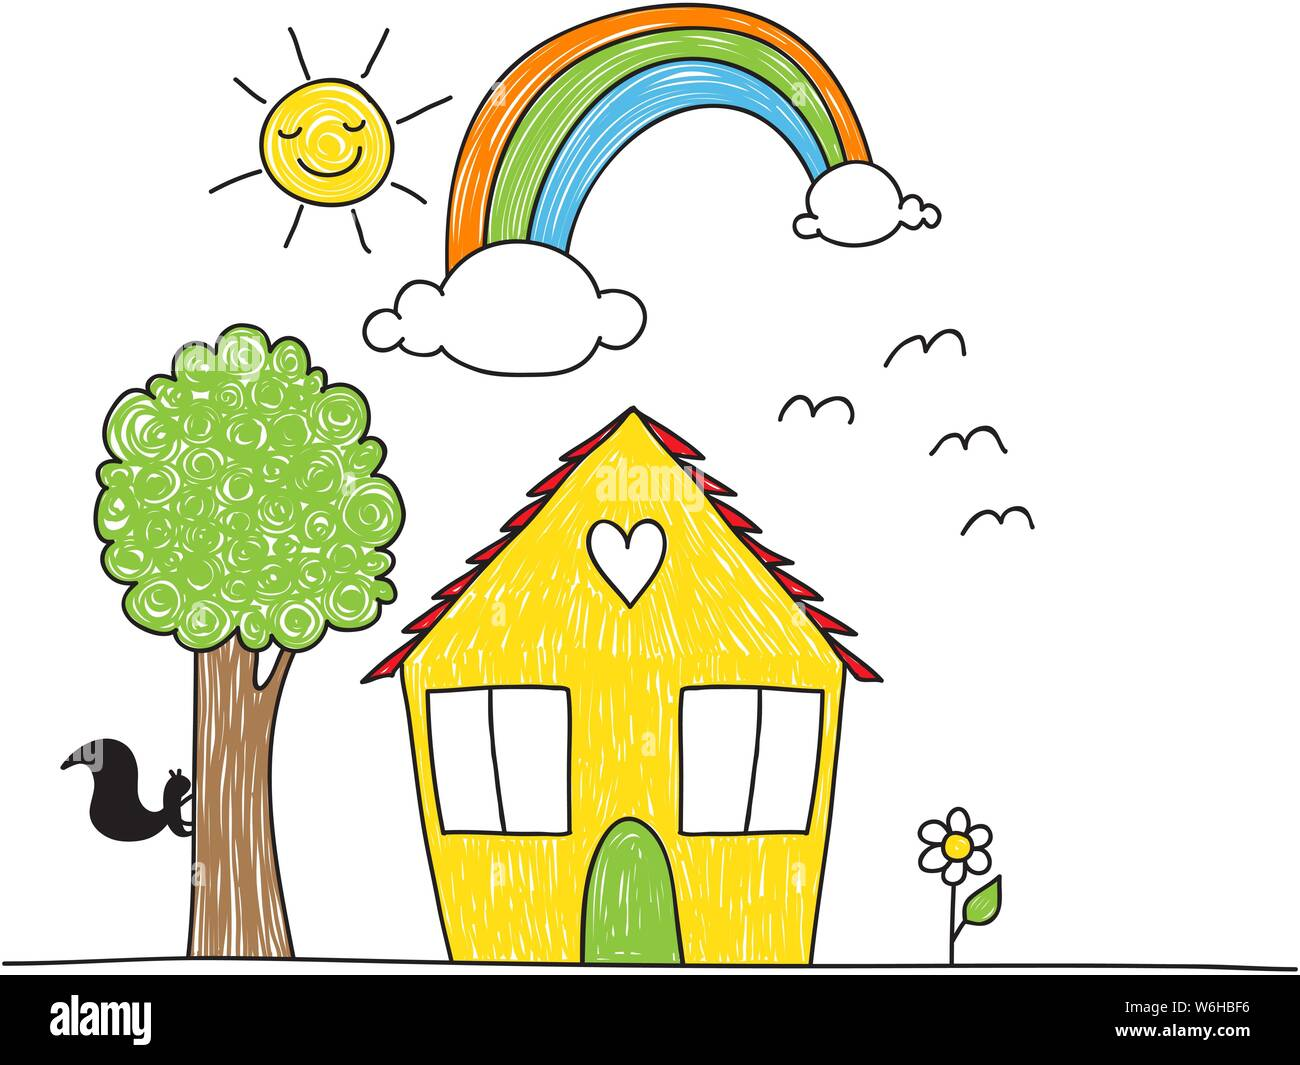 Cute Children S Drawing Style House Tree Flowers Rainbow And Sun The Coloring Is Imperfect Looking Stock Vector Image Art Alamy